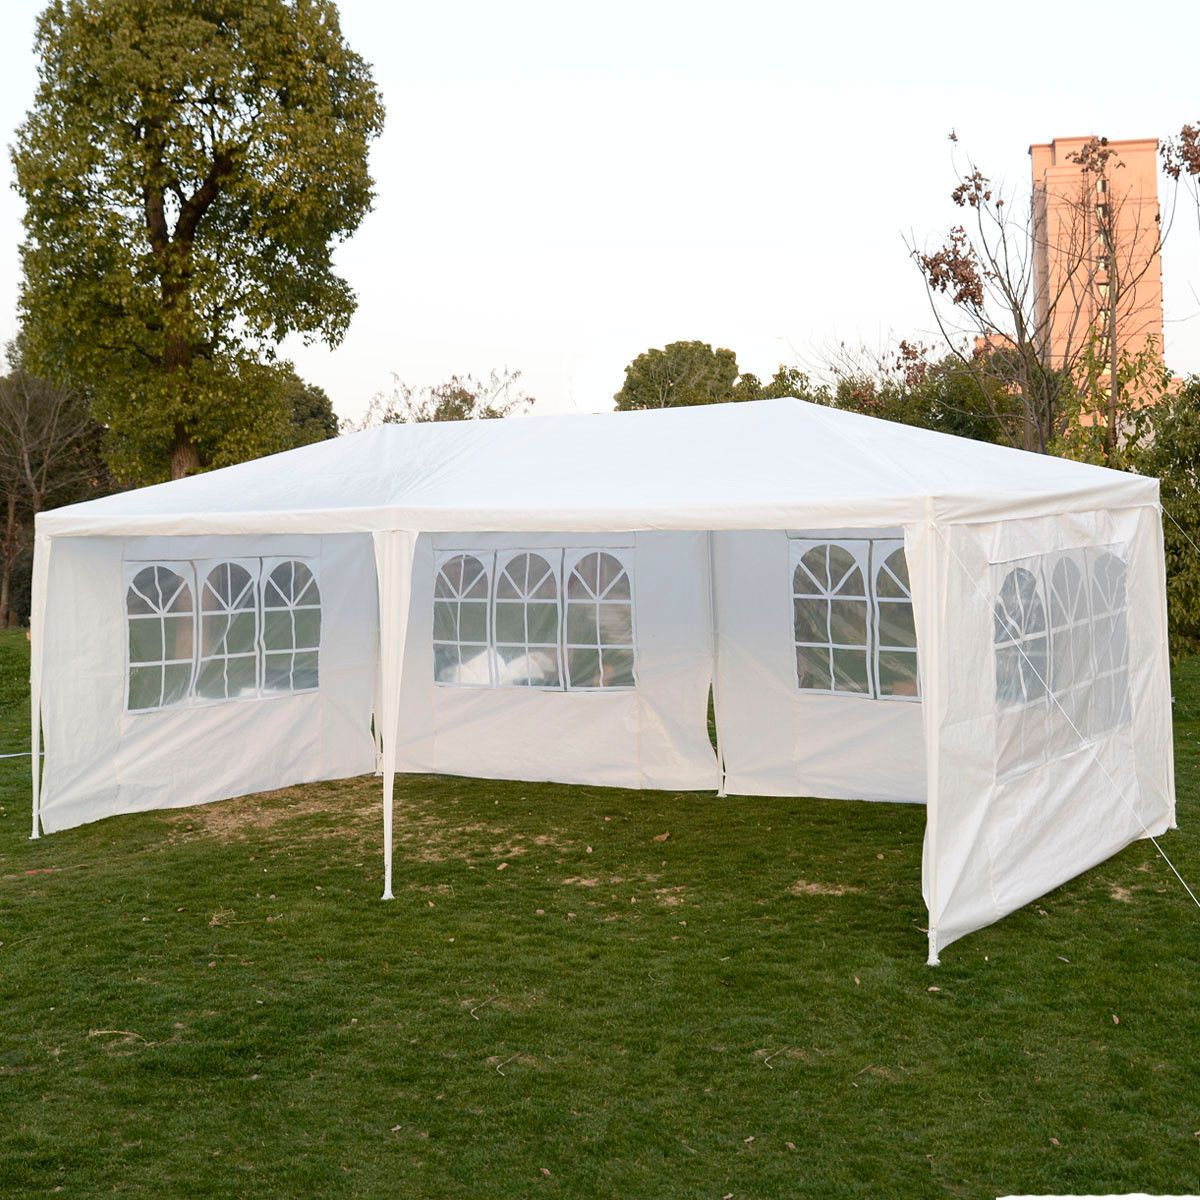 This High Quality Tents Can Be Conveniently Carried And Are Perfect For Many Outdoor Needs Canopy Outdoor Patio Tents Outdoor Tent